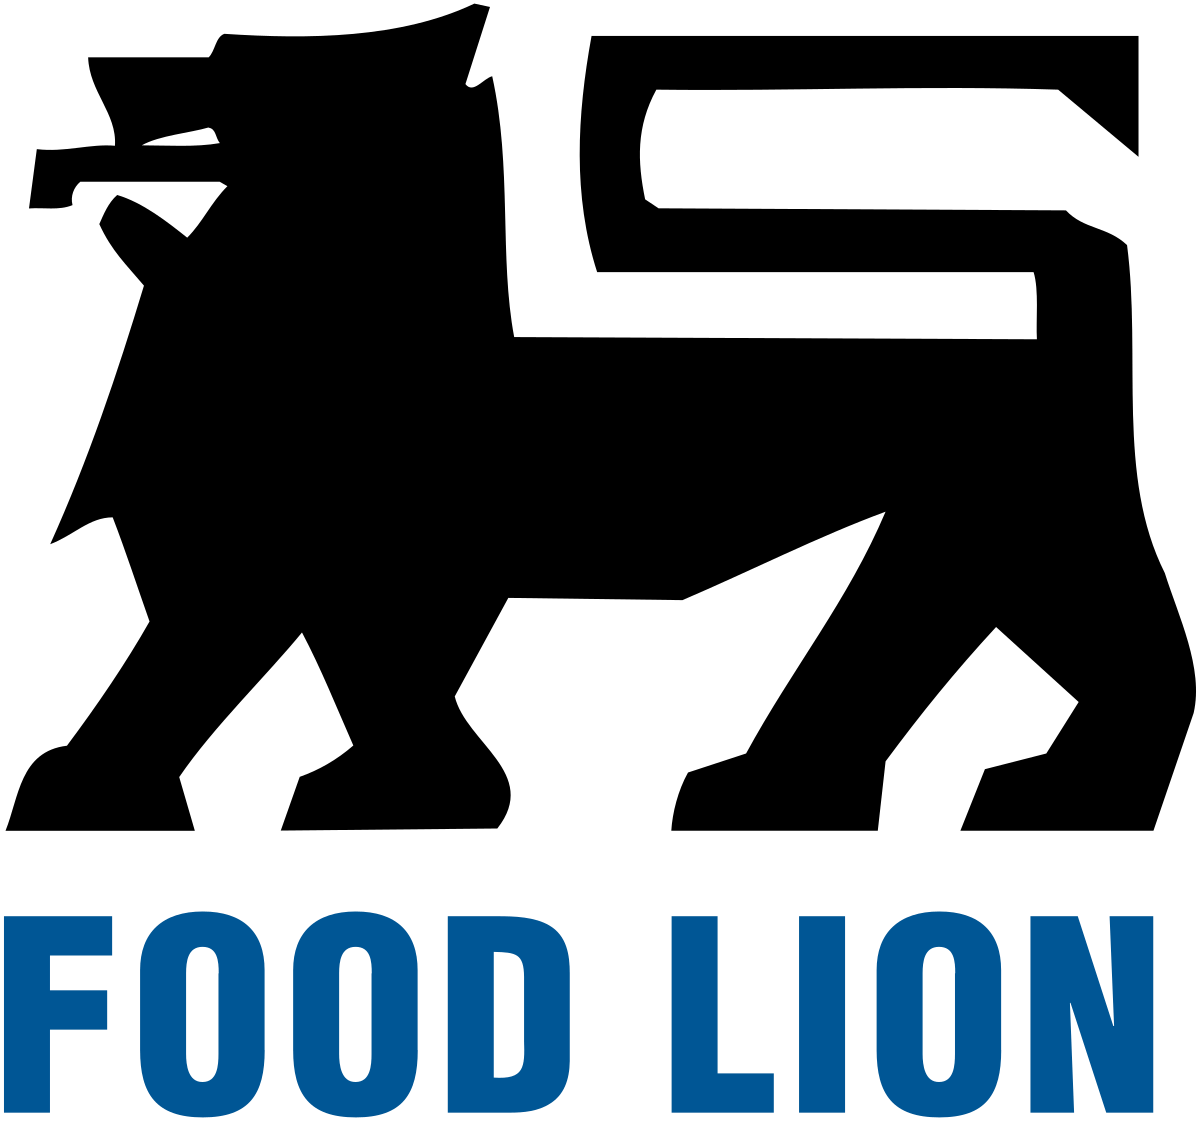 Food Lion Creates New Shopping Experience for Local Customers